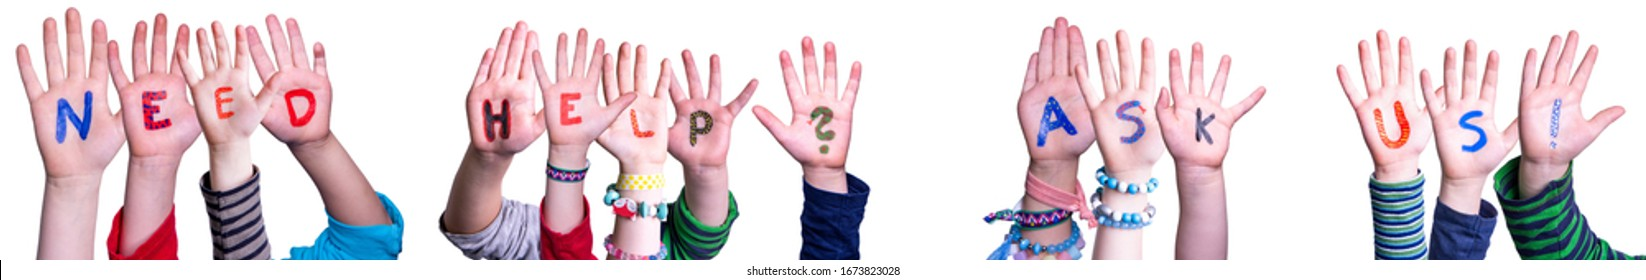 Children Hands Building Word Need Help Ask Us, Isolated Background